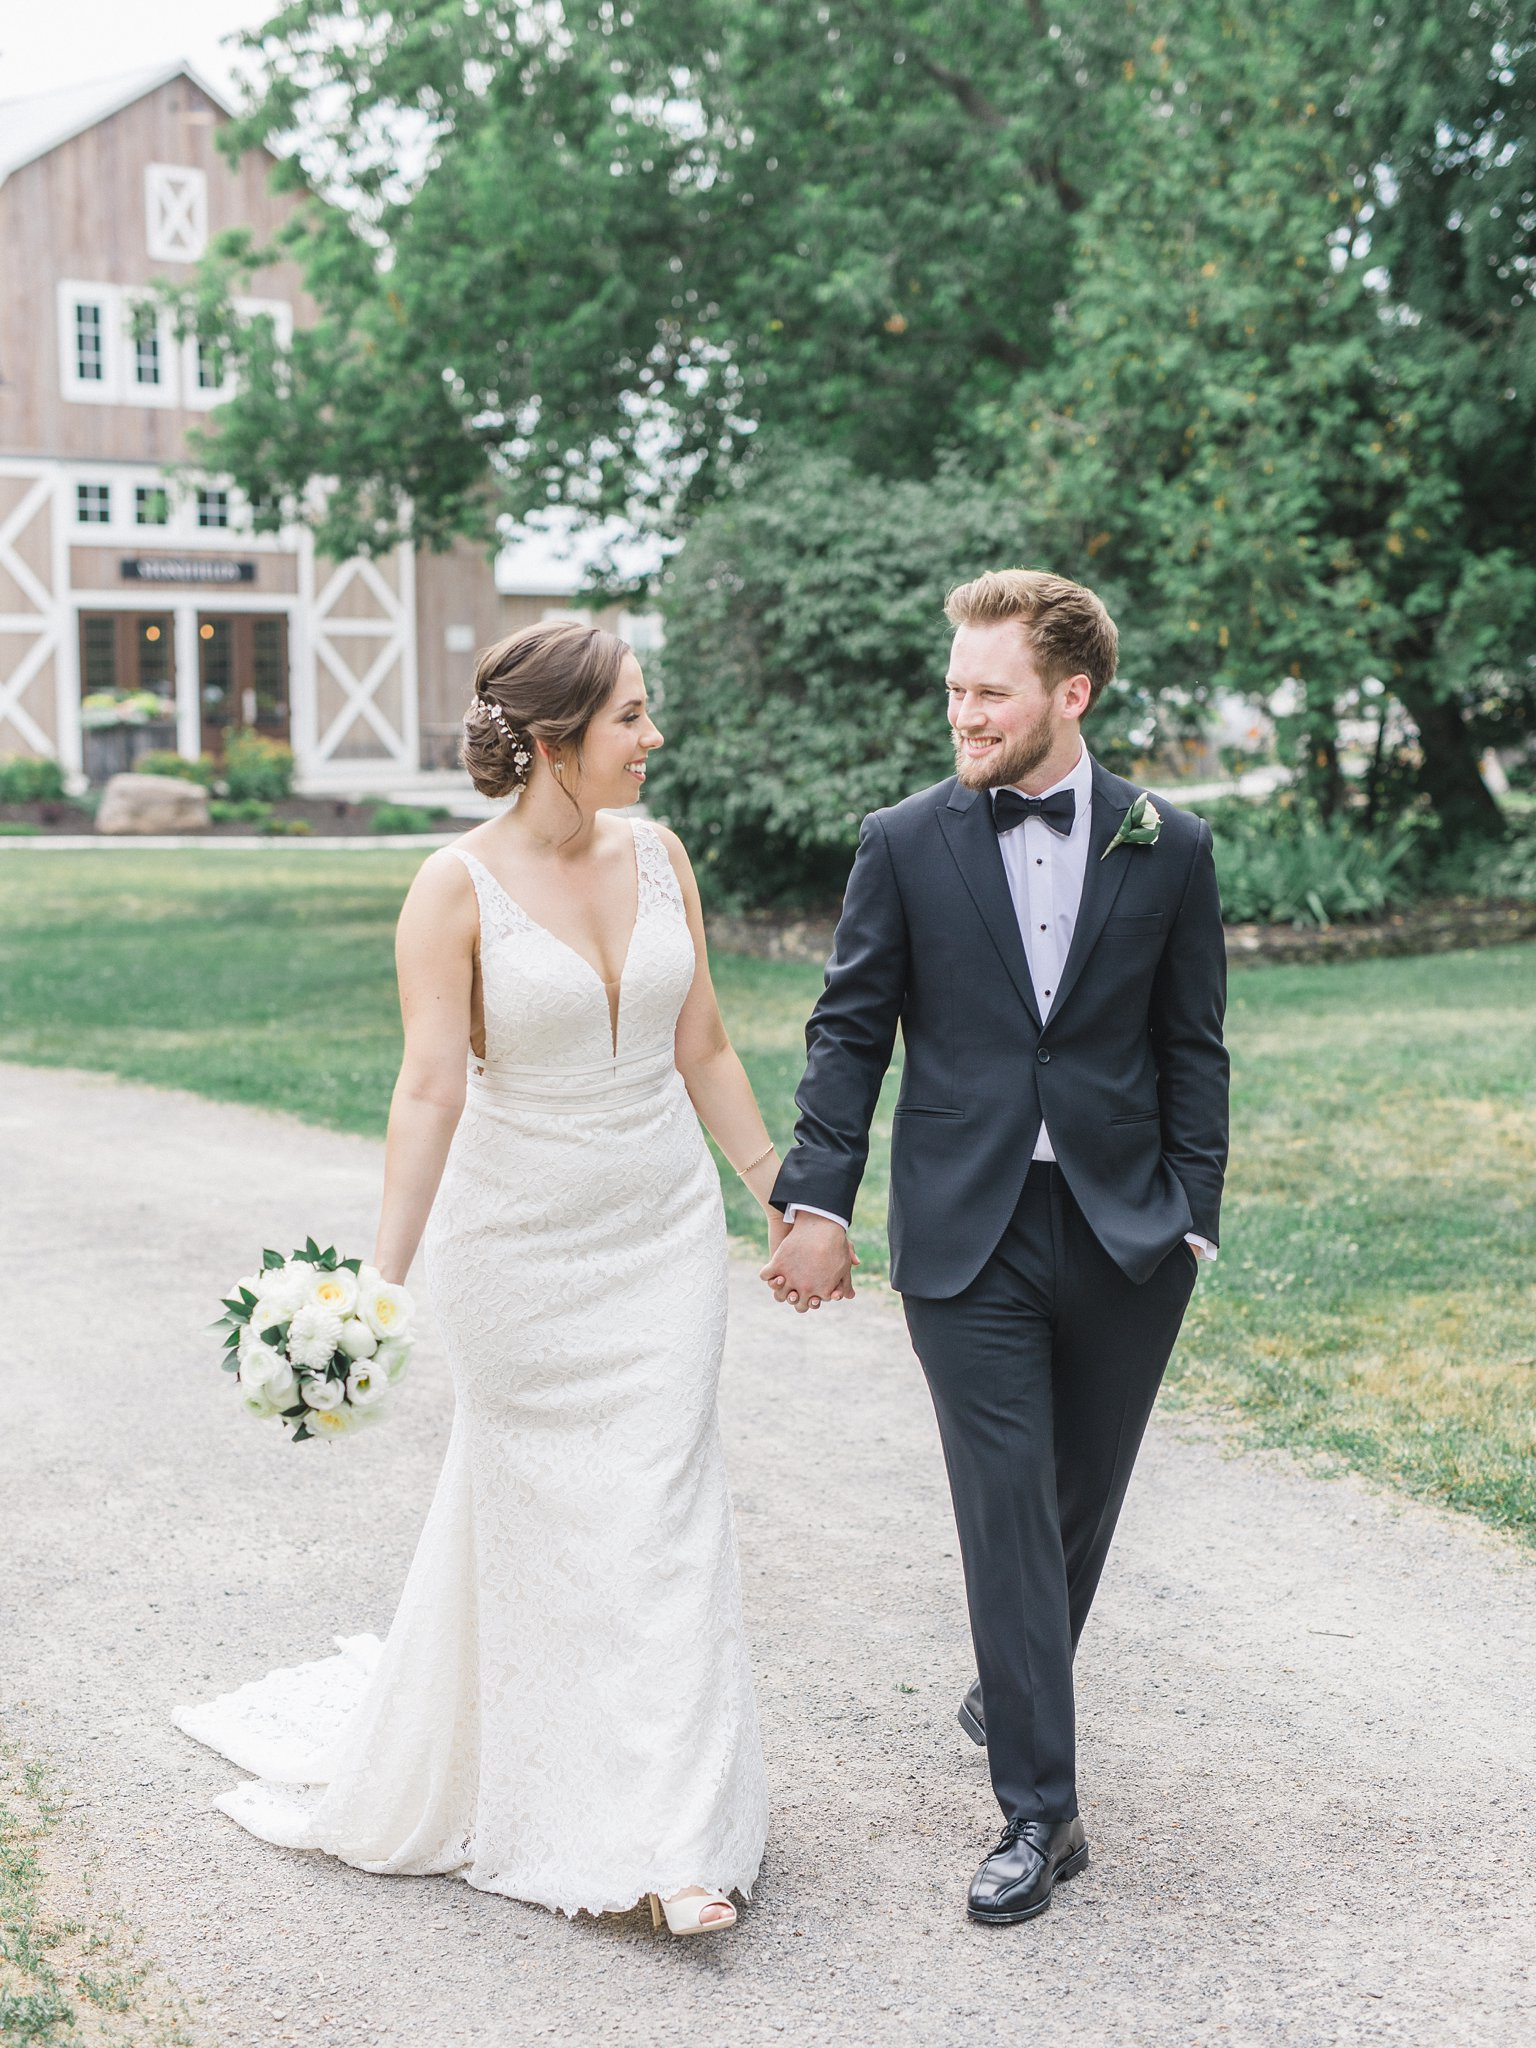 Plunging v-neck wedding dress with illusion sides married at Stonefields, Amy Pinder Photography